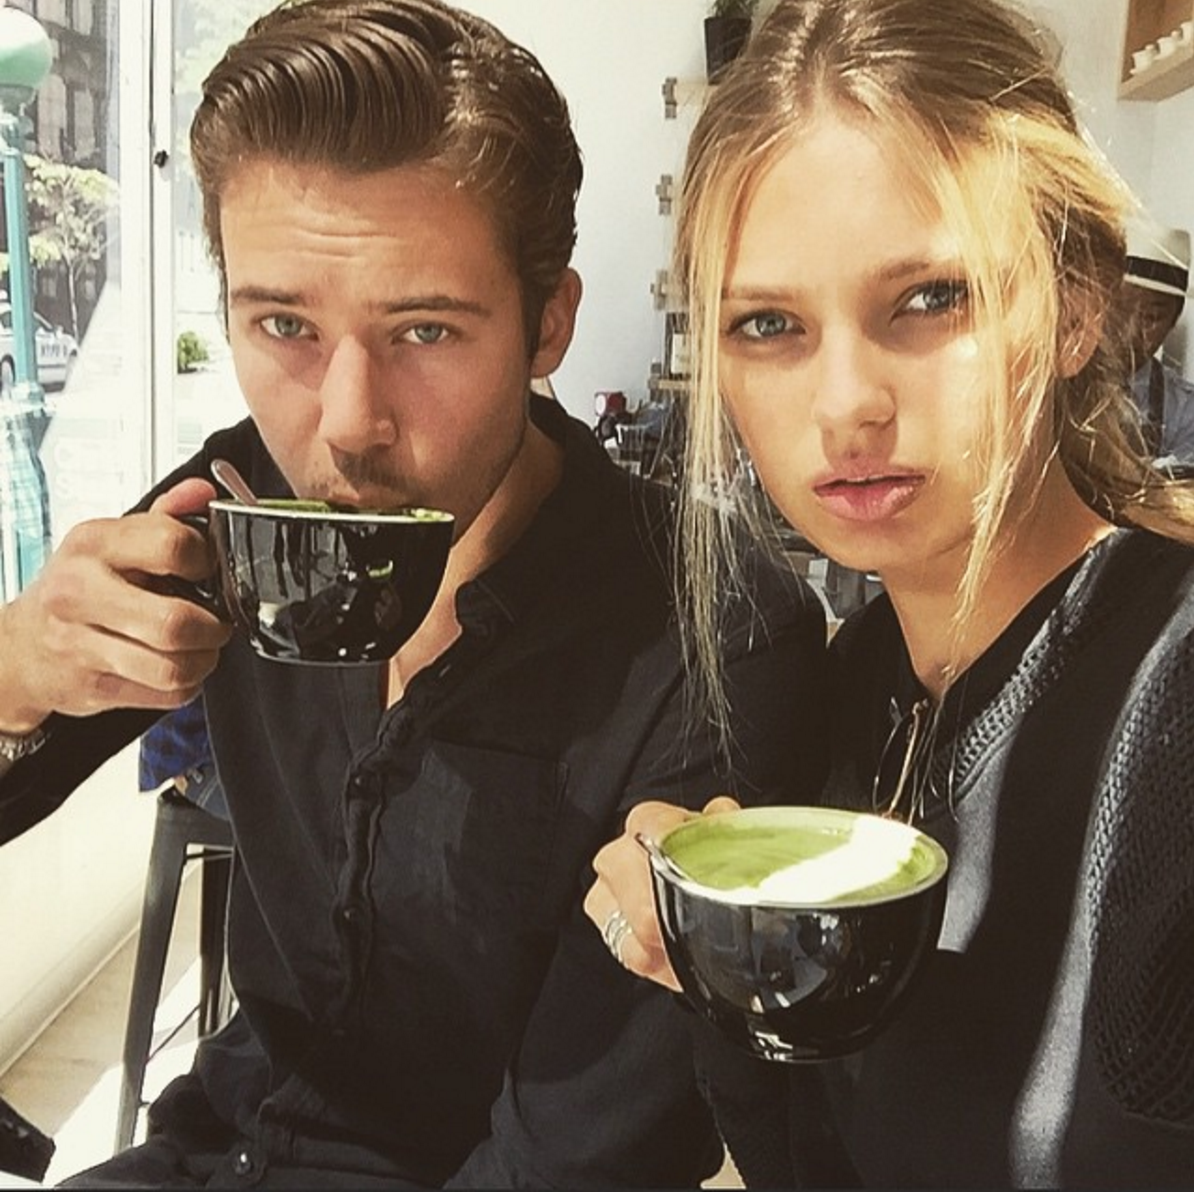 20 Up your matcha game with a hot matcha